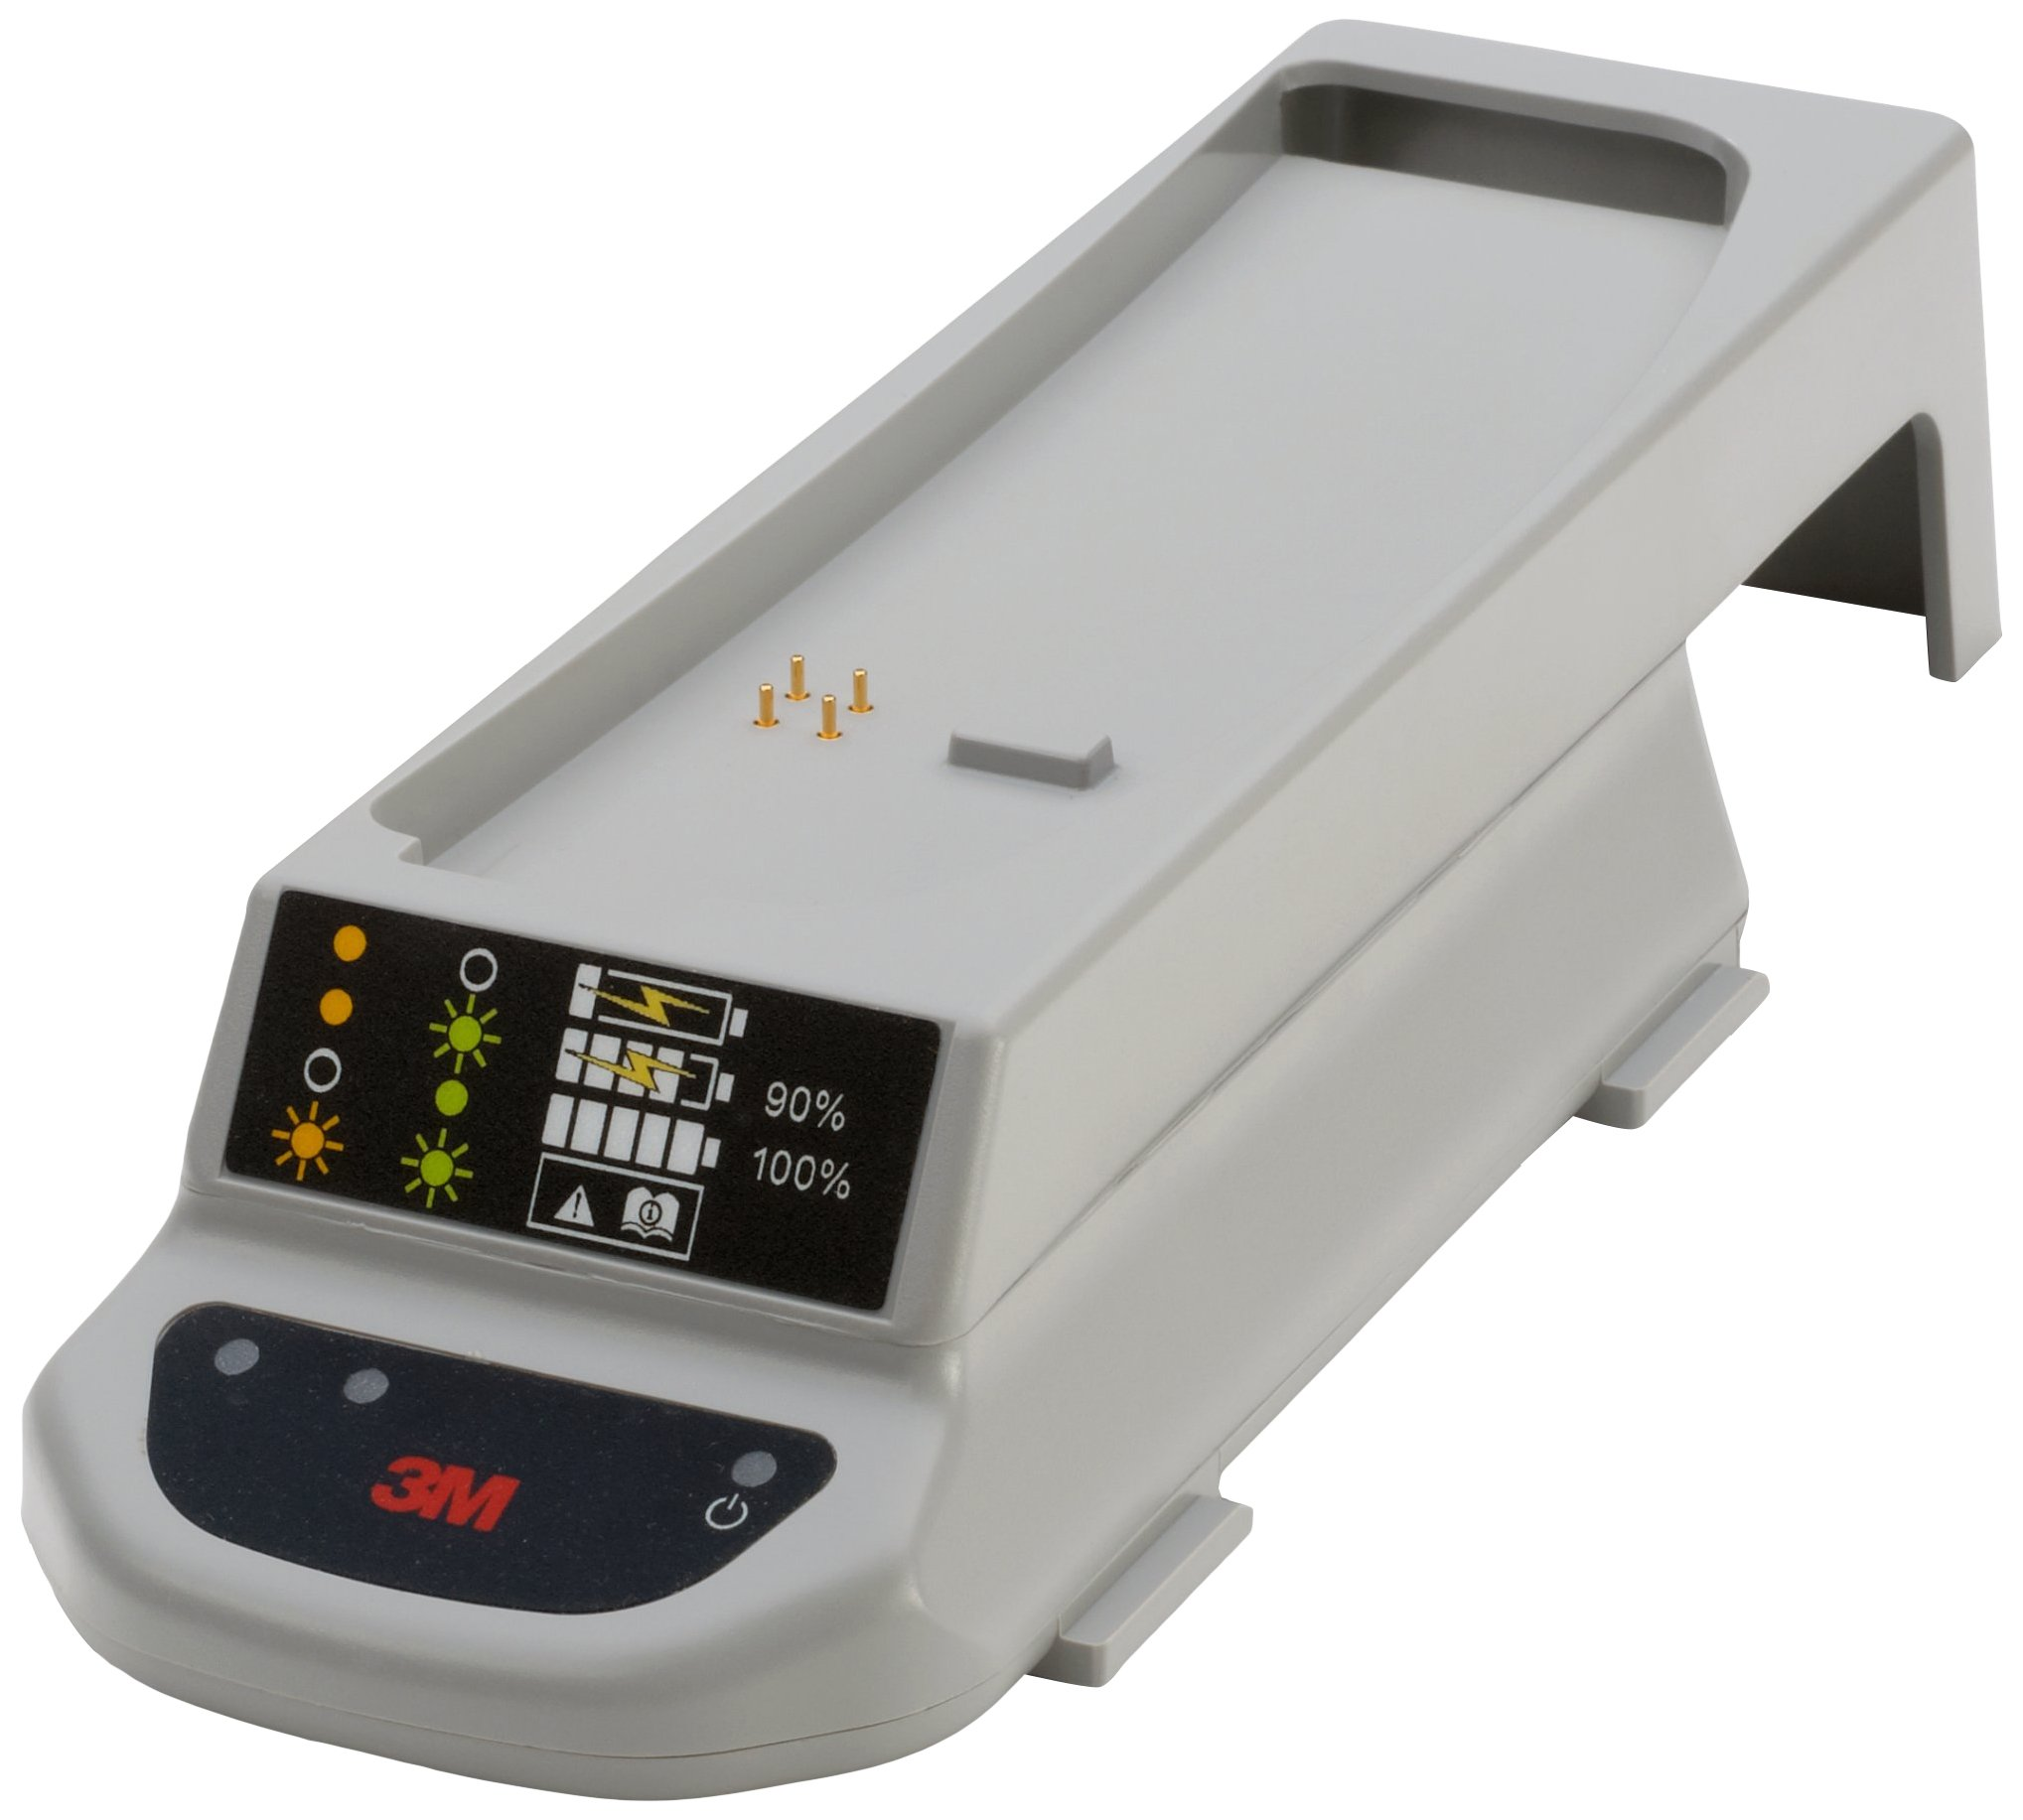 3M Versaflo 17365-case Battery Charger Cradle TR-340, for Versaflo TR-300 and Speed Glass TR-300-SG PAPR 1/case by 3M (Image #1)